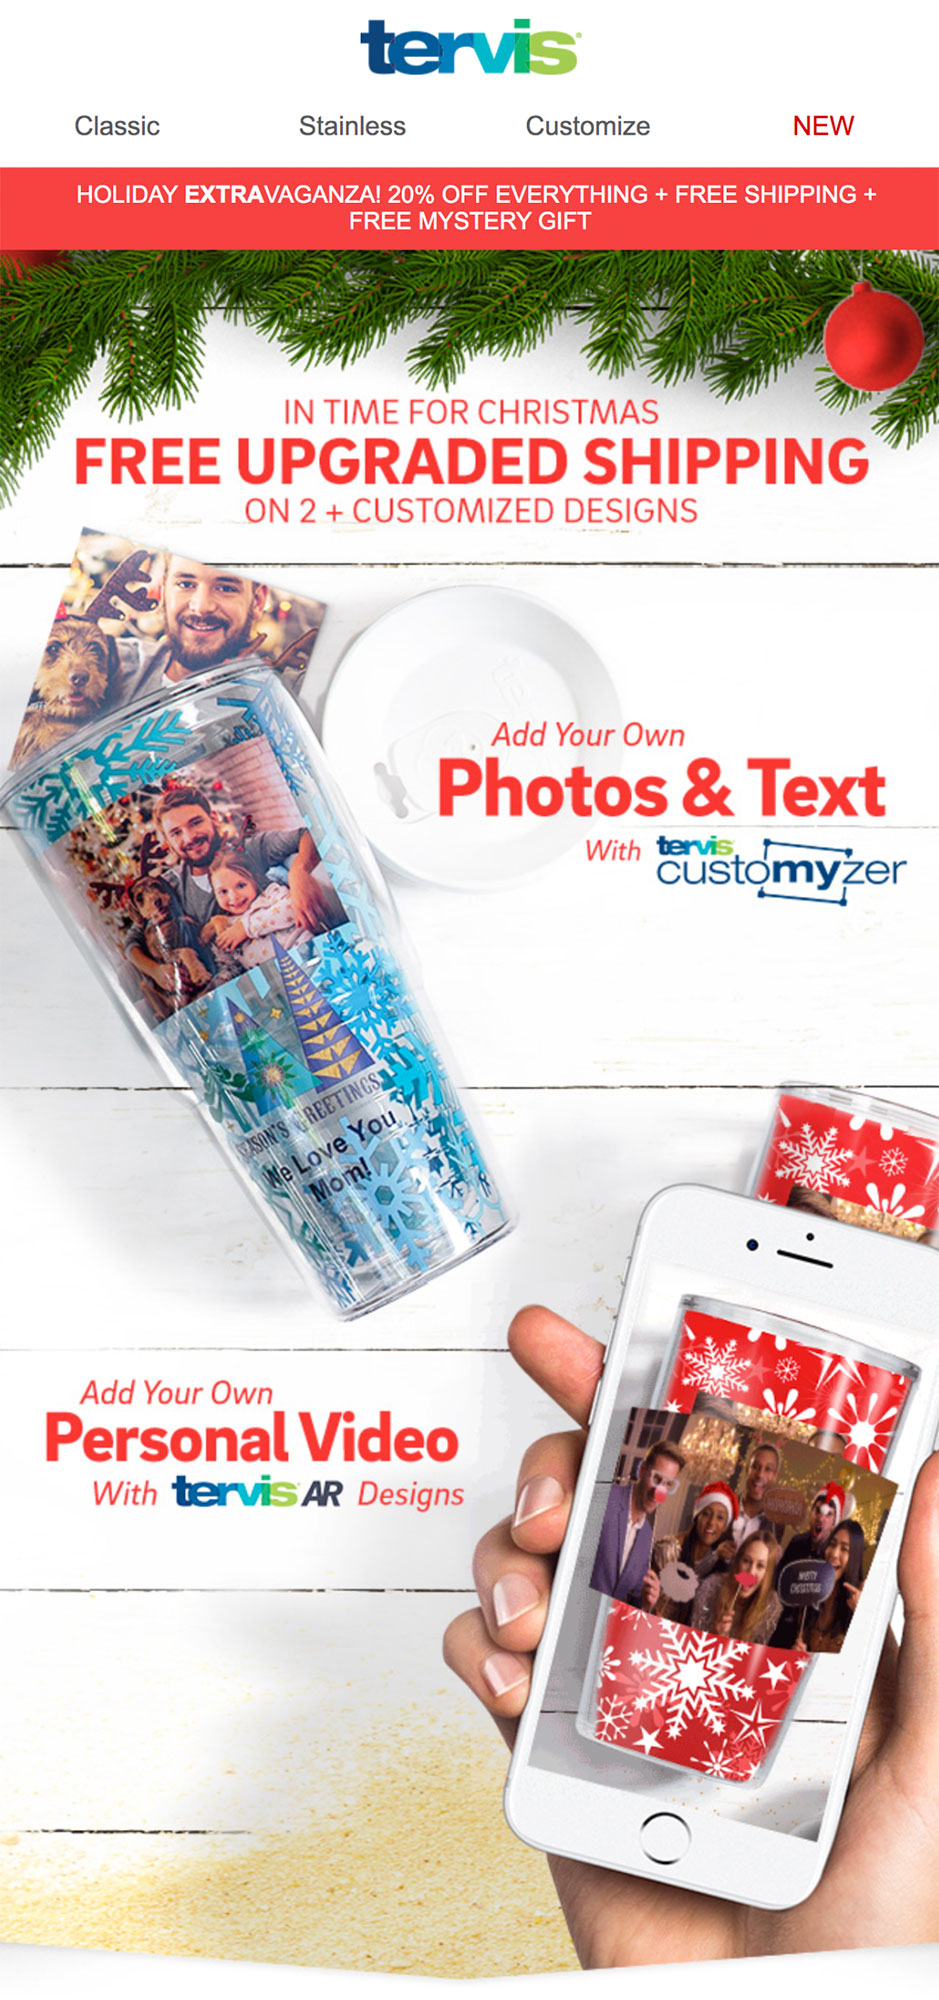 Tervis shows off its customization.